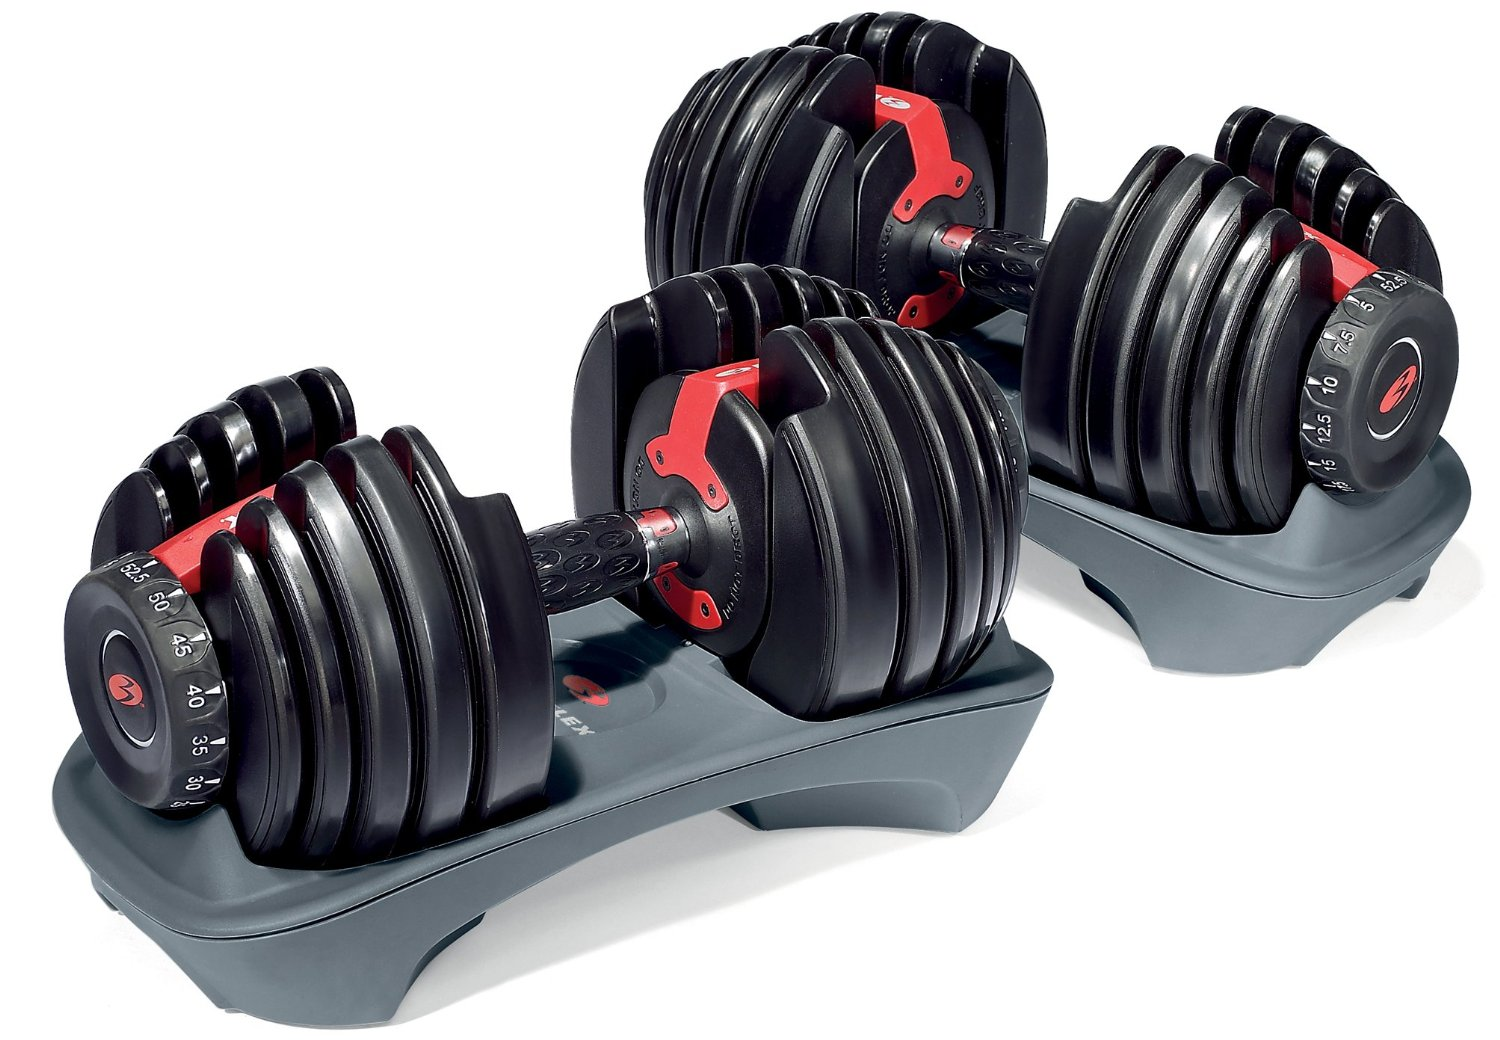 Top 10 Perfect Dumbbell Set Reviews — Achieve Your Fitness Goals in 2020